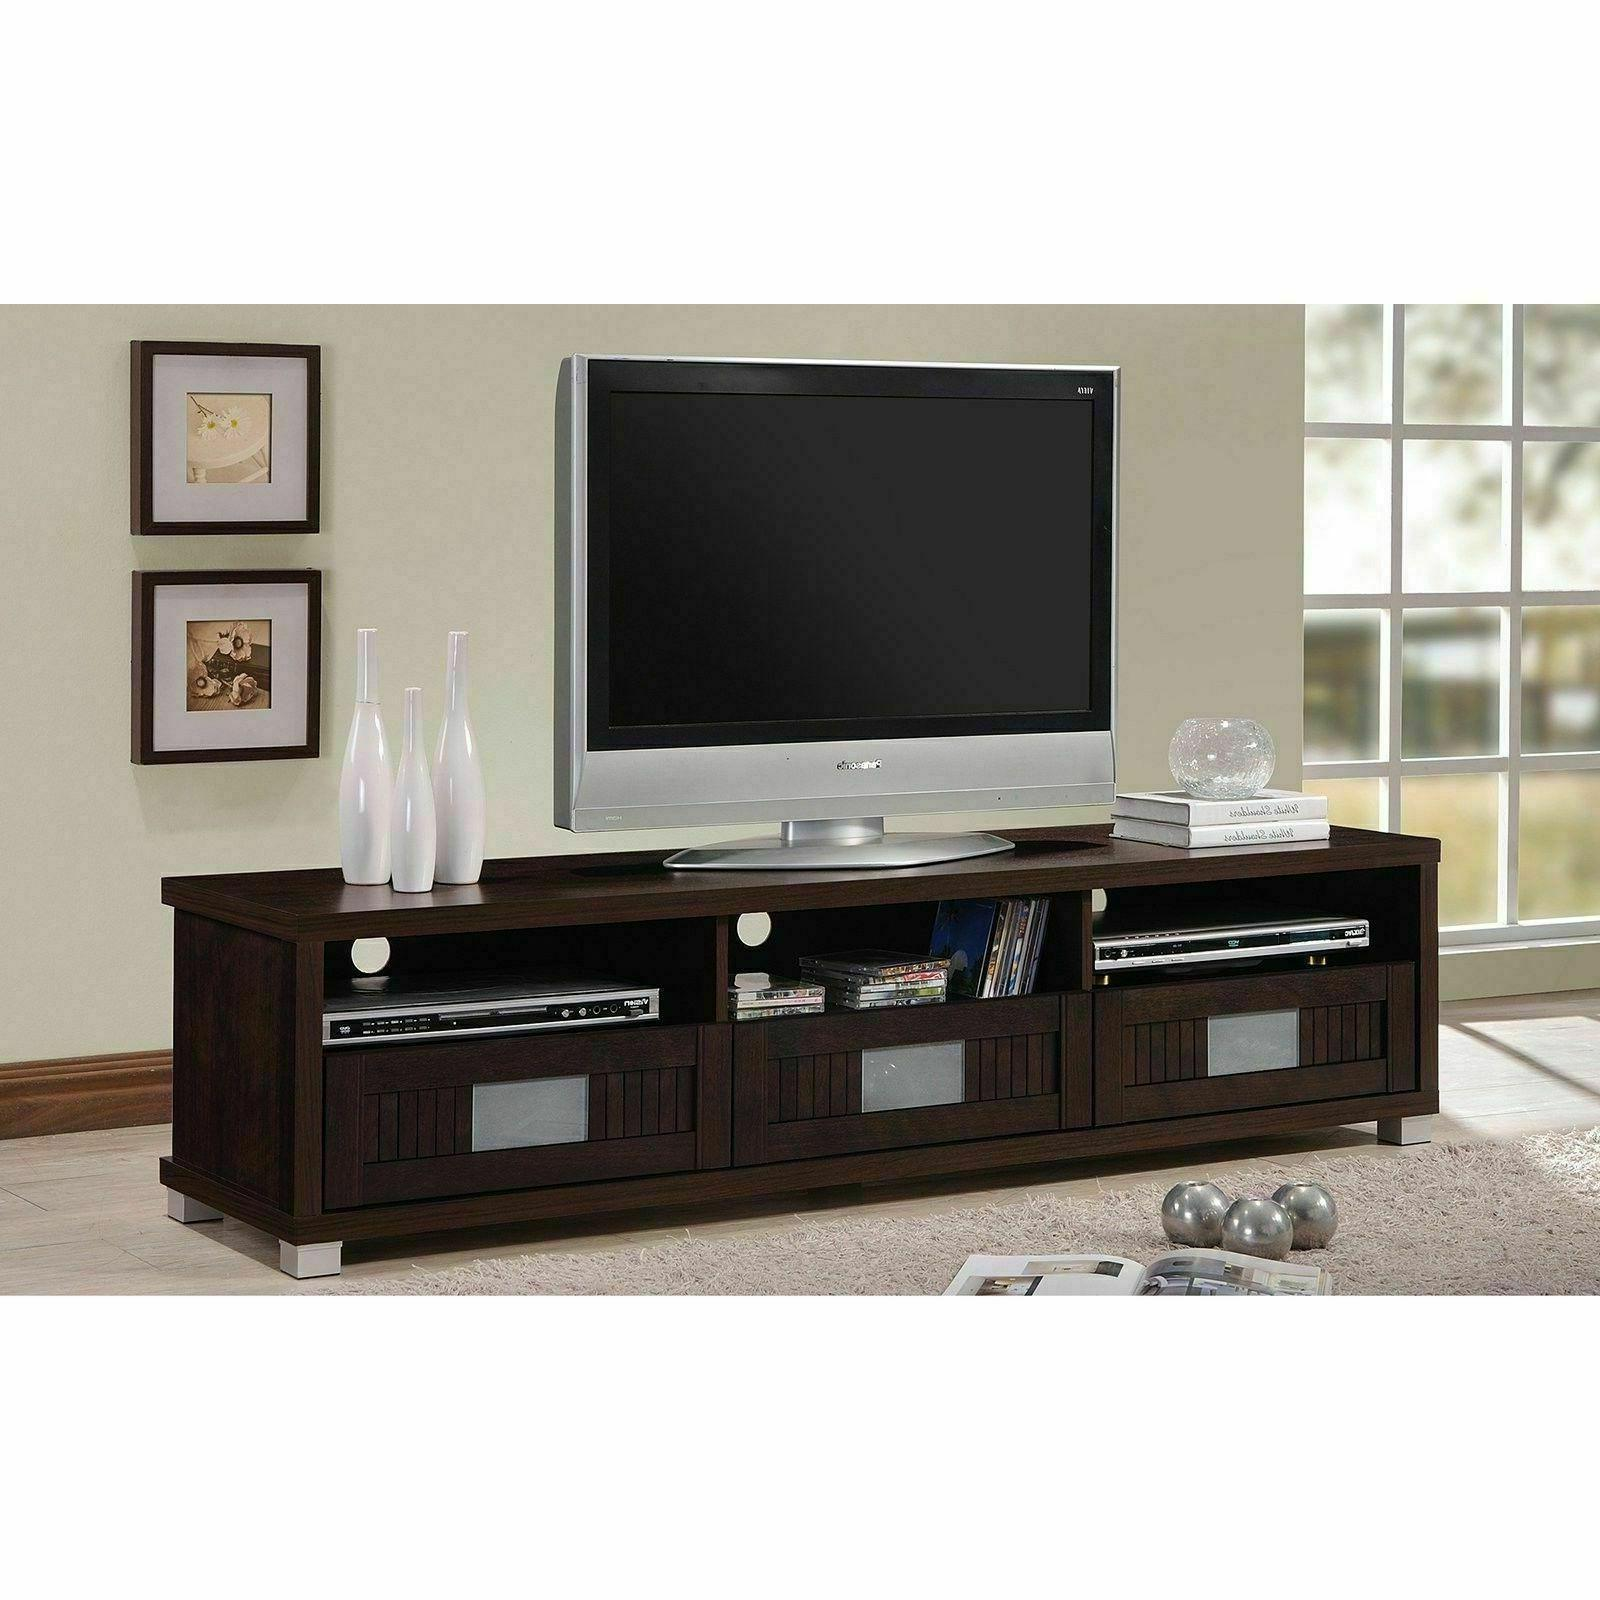 75 Inch with Drawers Modern